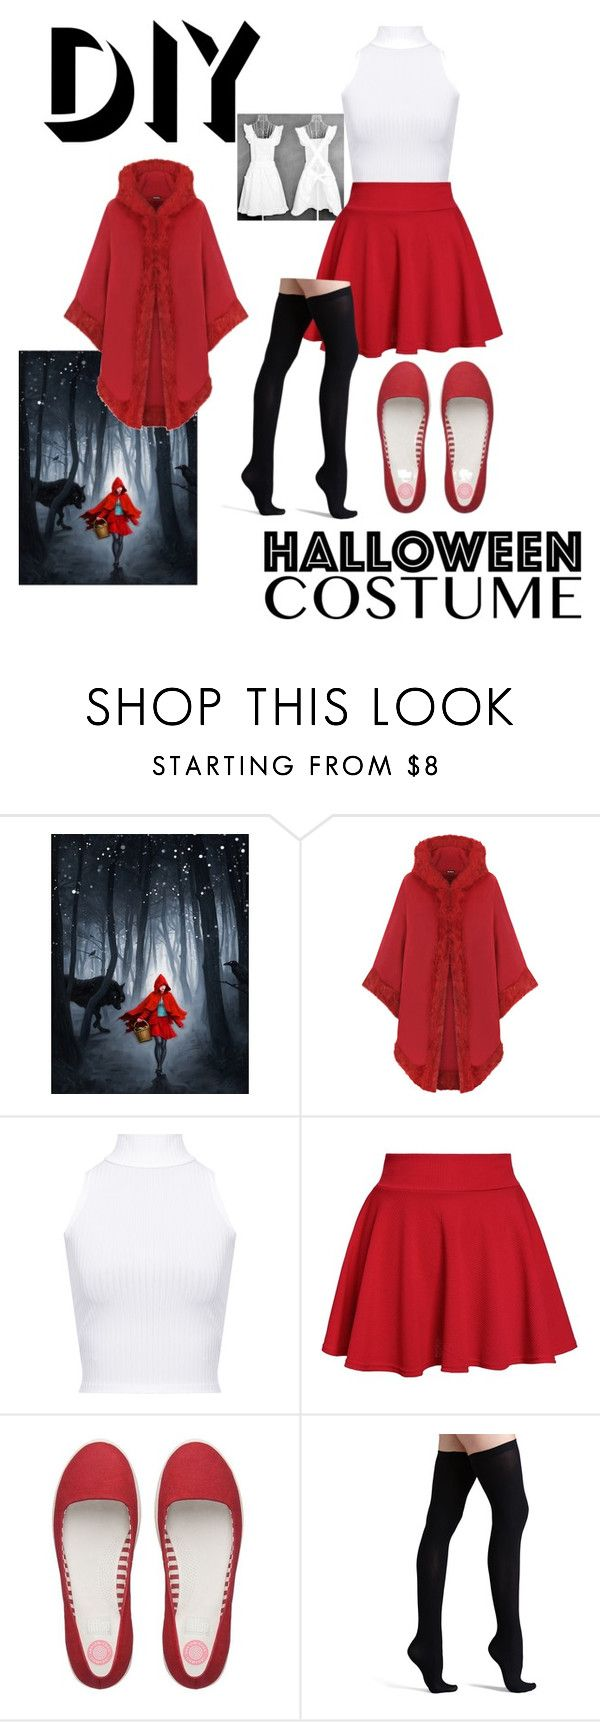 Best 25 red riding hood costume ideas on pinterest red riding diy little red riding hood costume by makeuphobbyist liked on polyvore featuring wearall solutioingenieria Choice Image